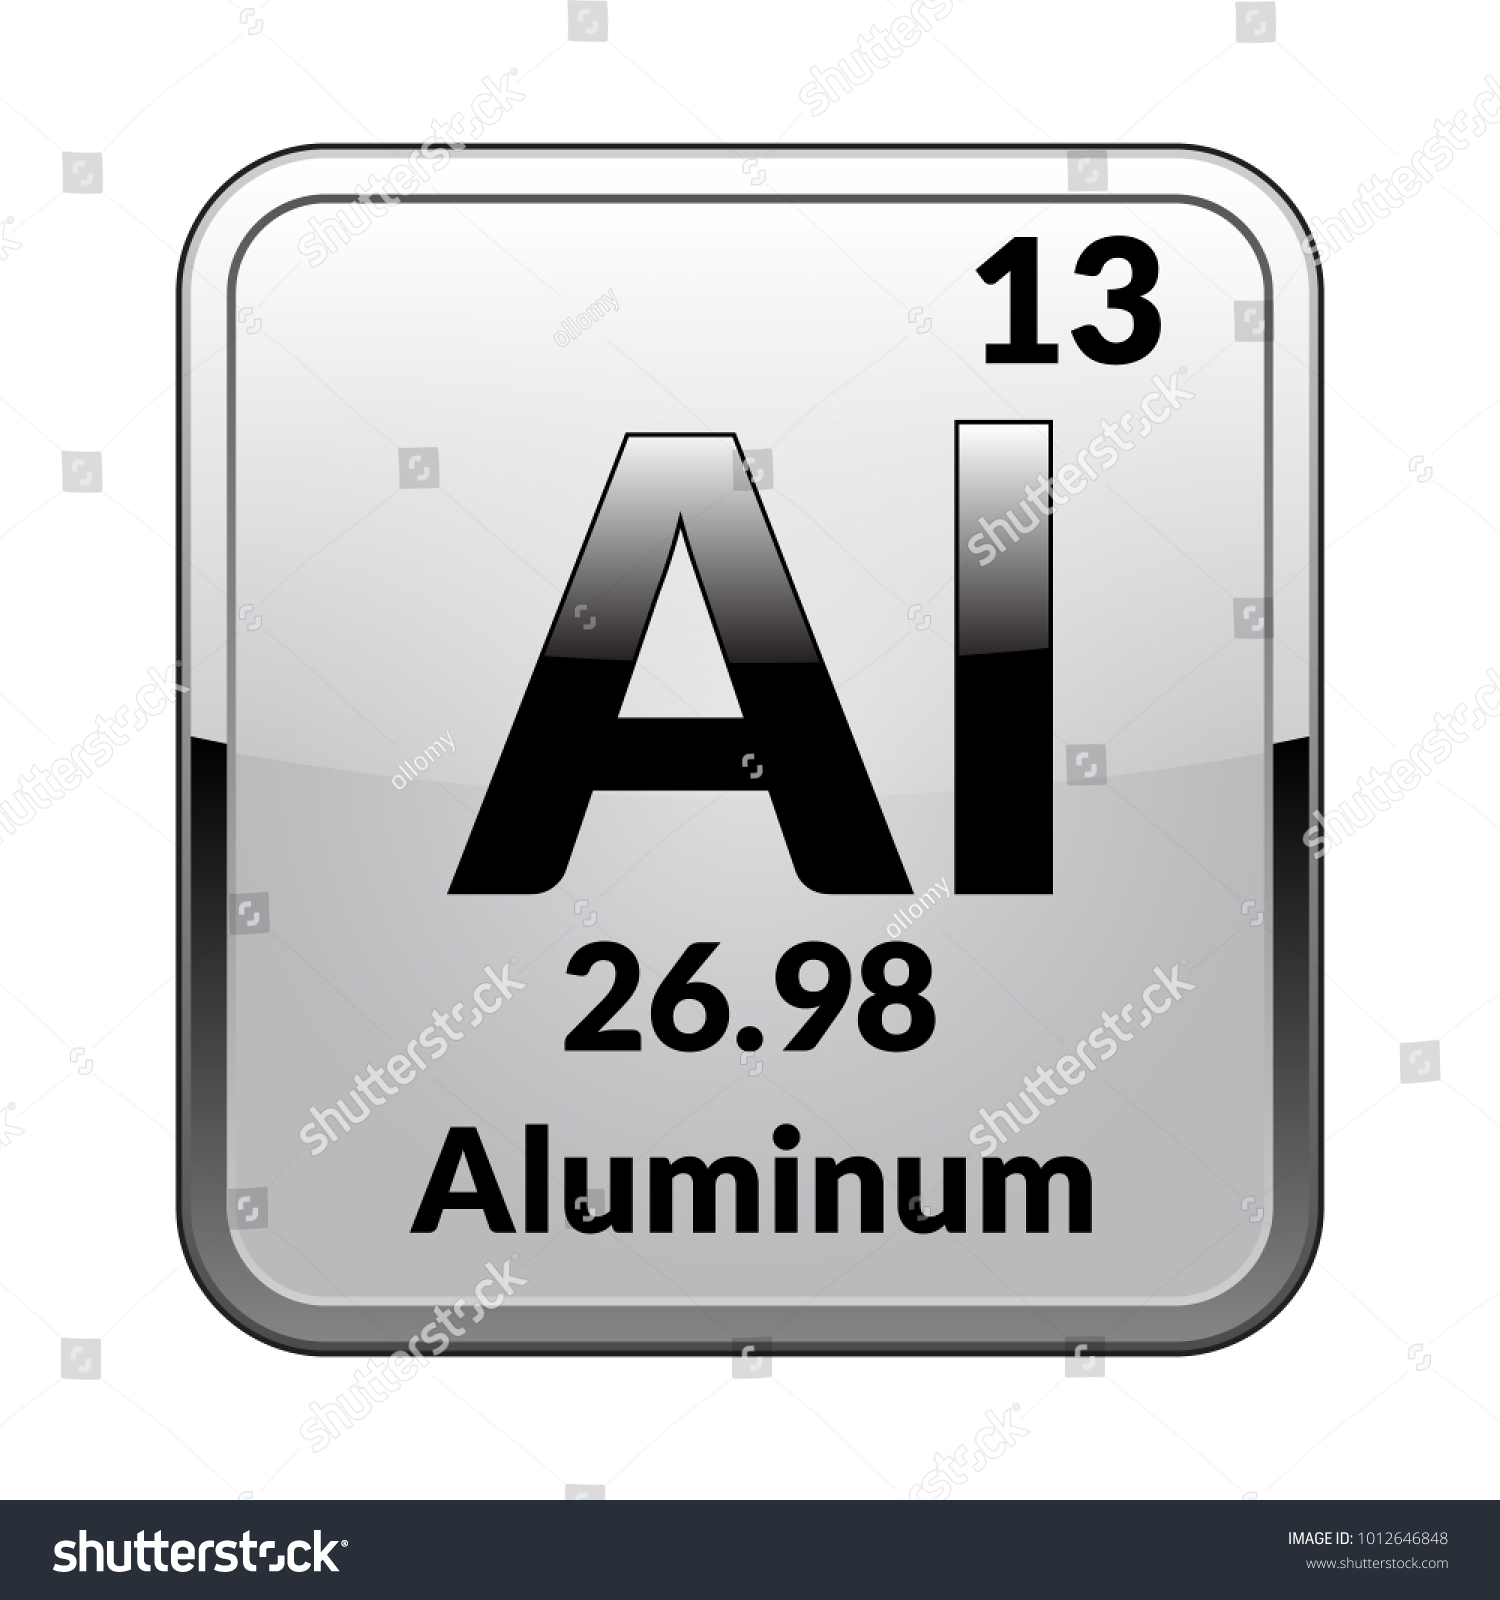 Element silver symbol gallery symbol and sign ideas aluminum symbolchemical element periodic table on stock vector aluminum symbolemical element of the periodic table on urtaz Gallery